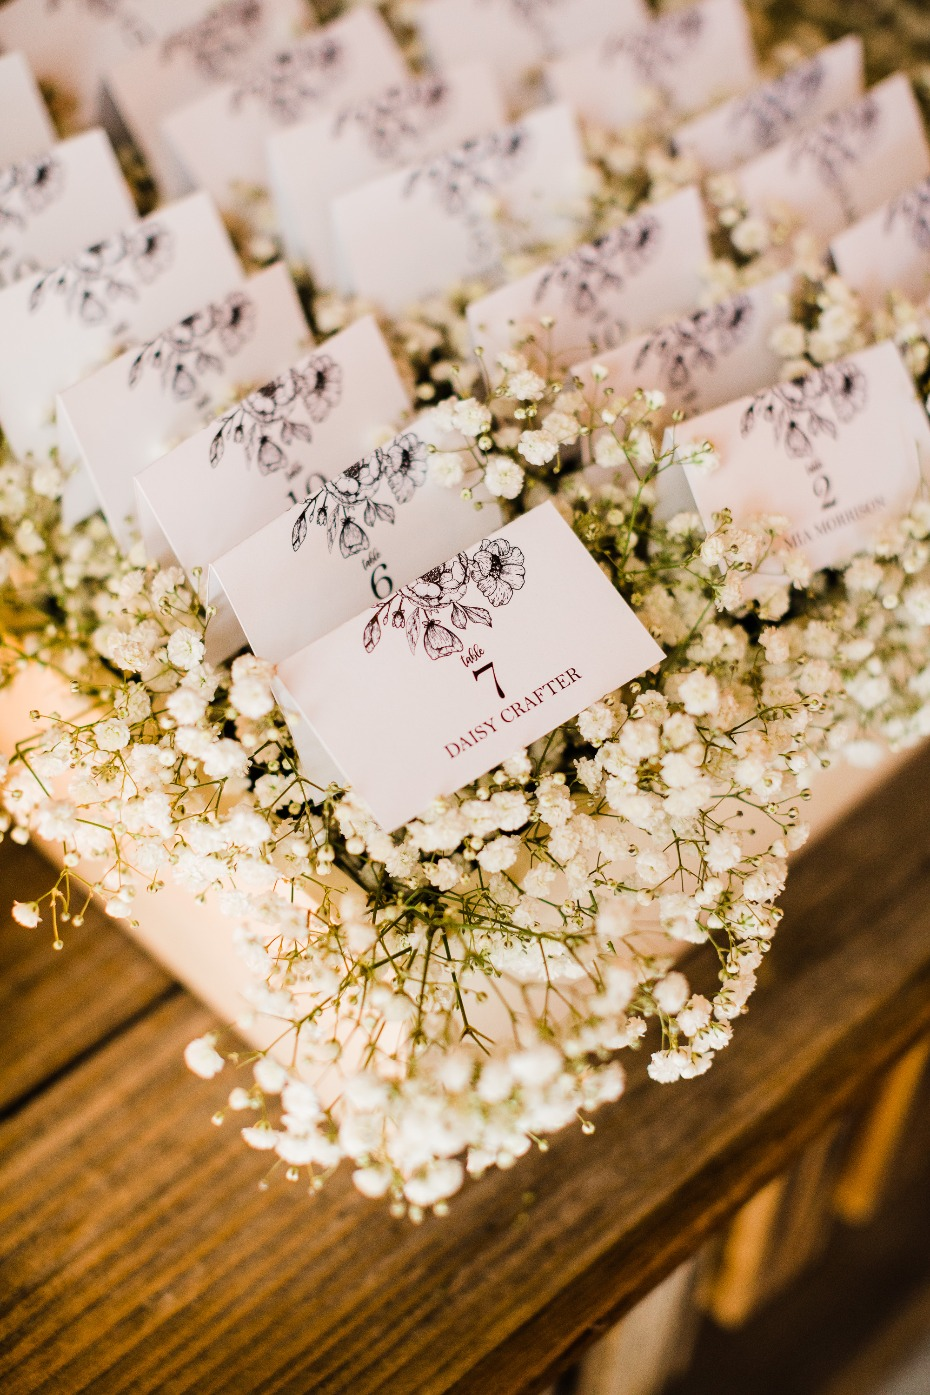 DIY Reception Details with Baby's Breath